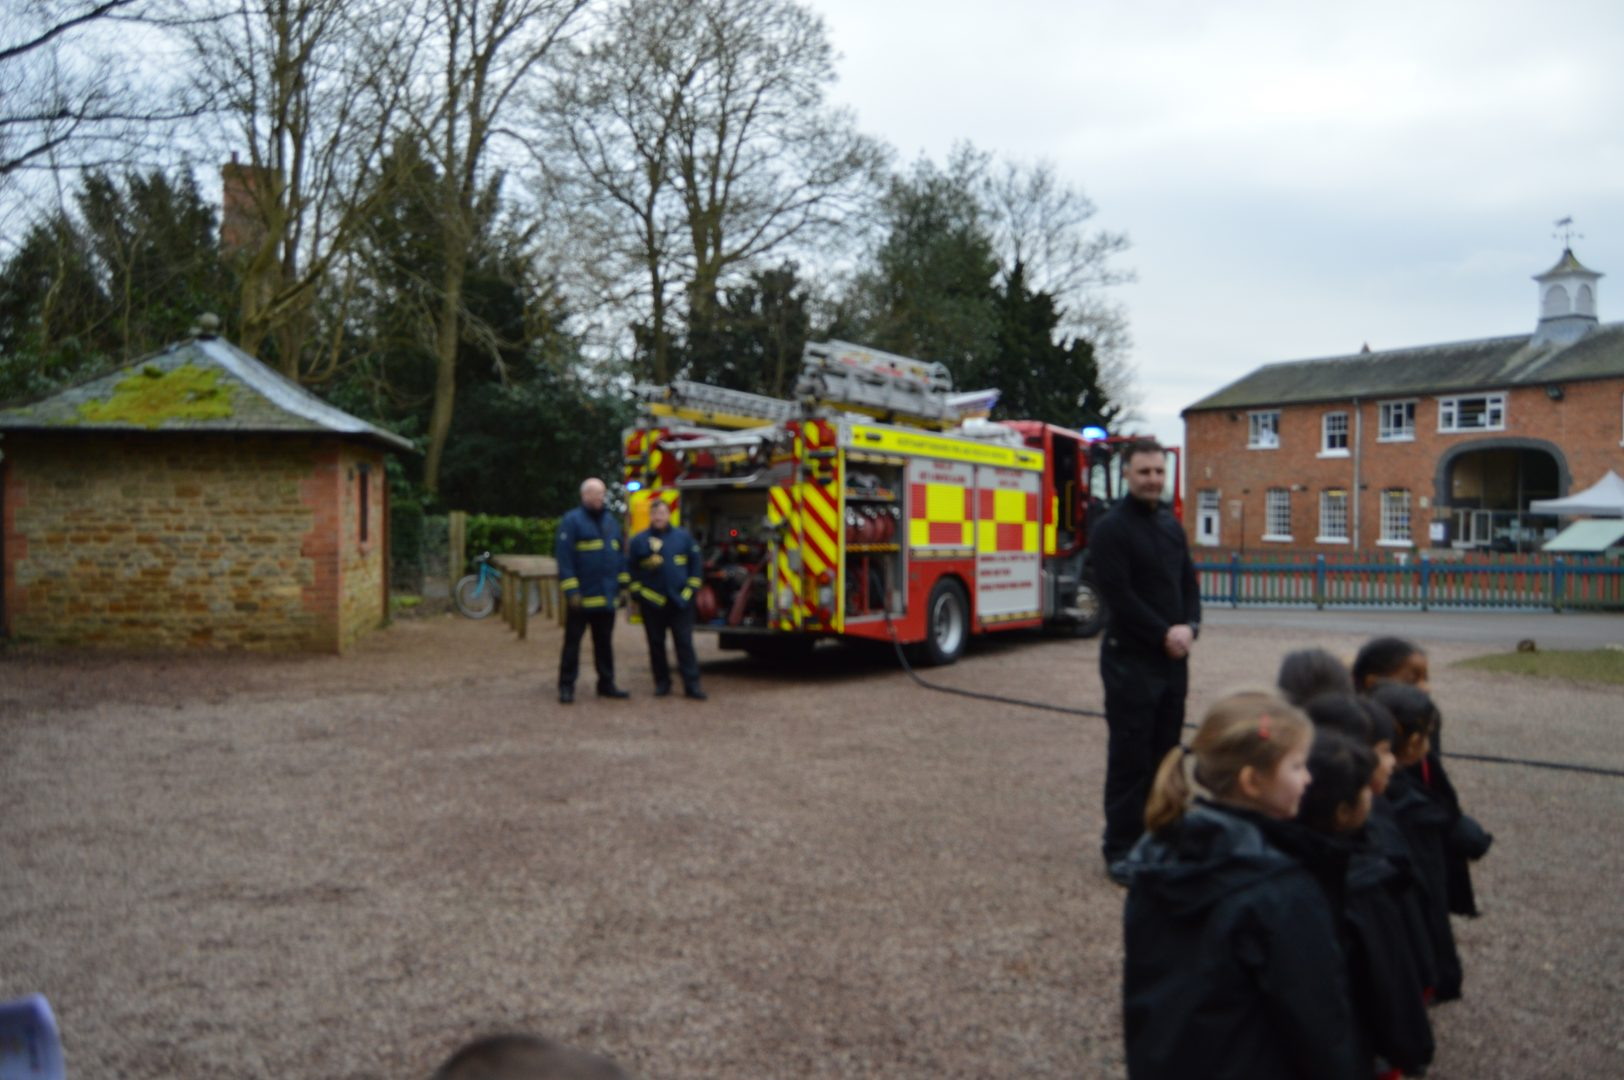 QHS nursery pupils with the fire brigade